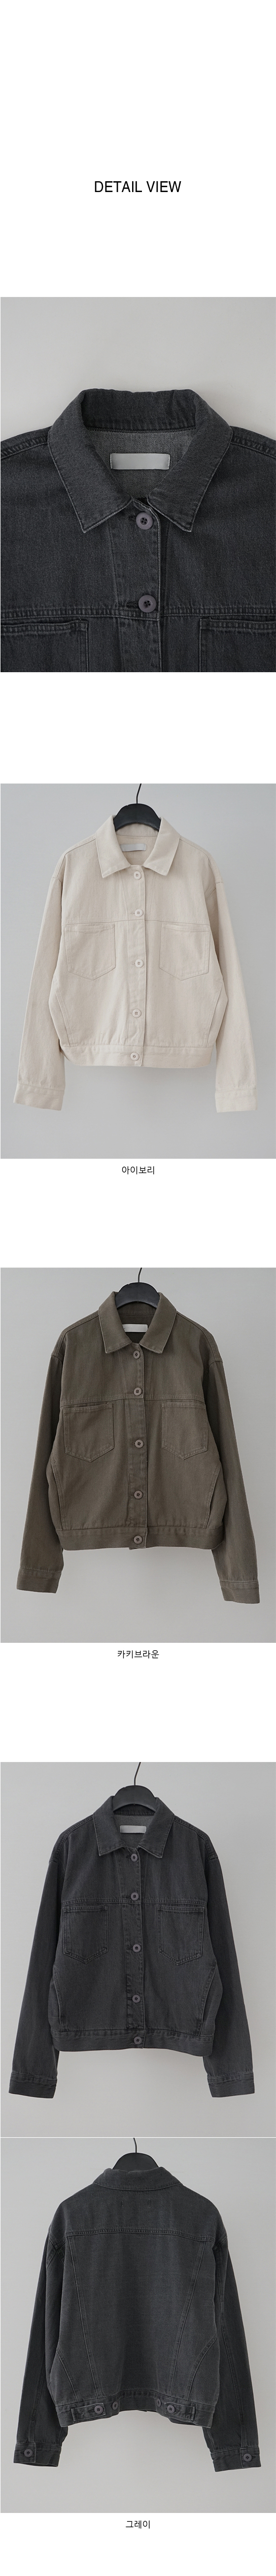 natural washing set - jacket